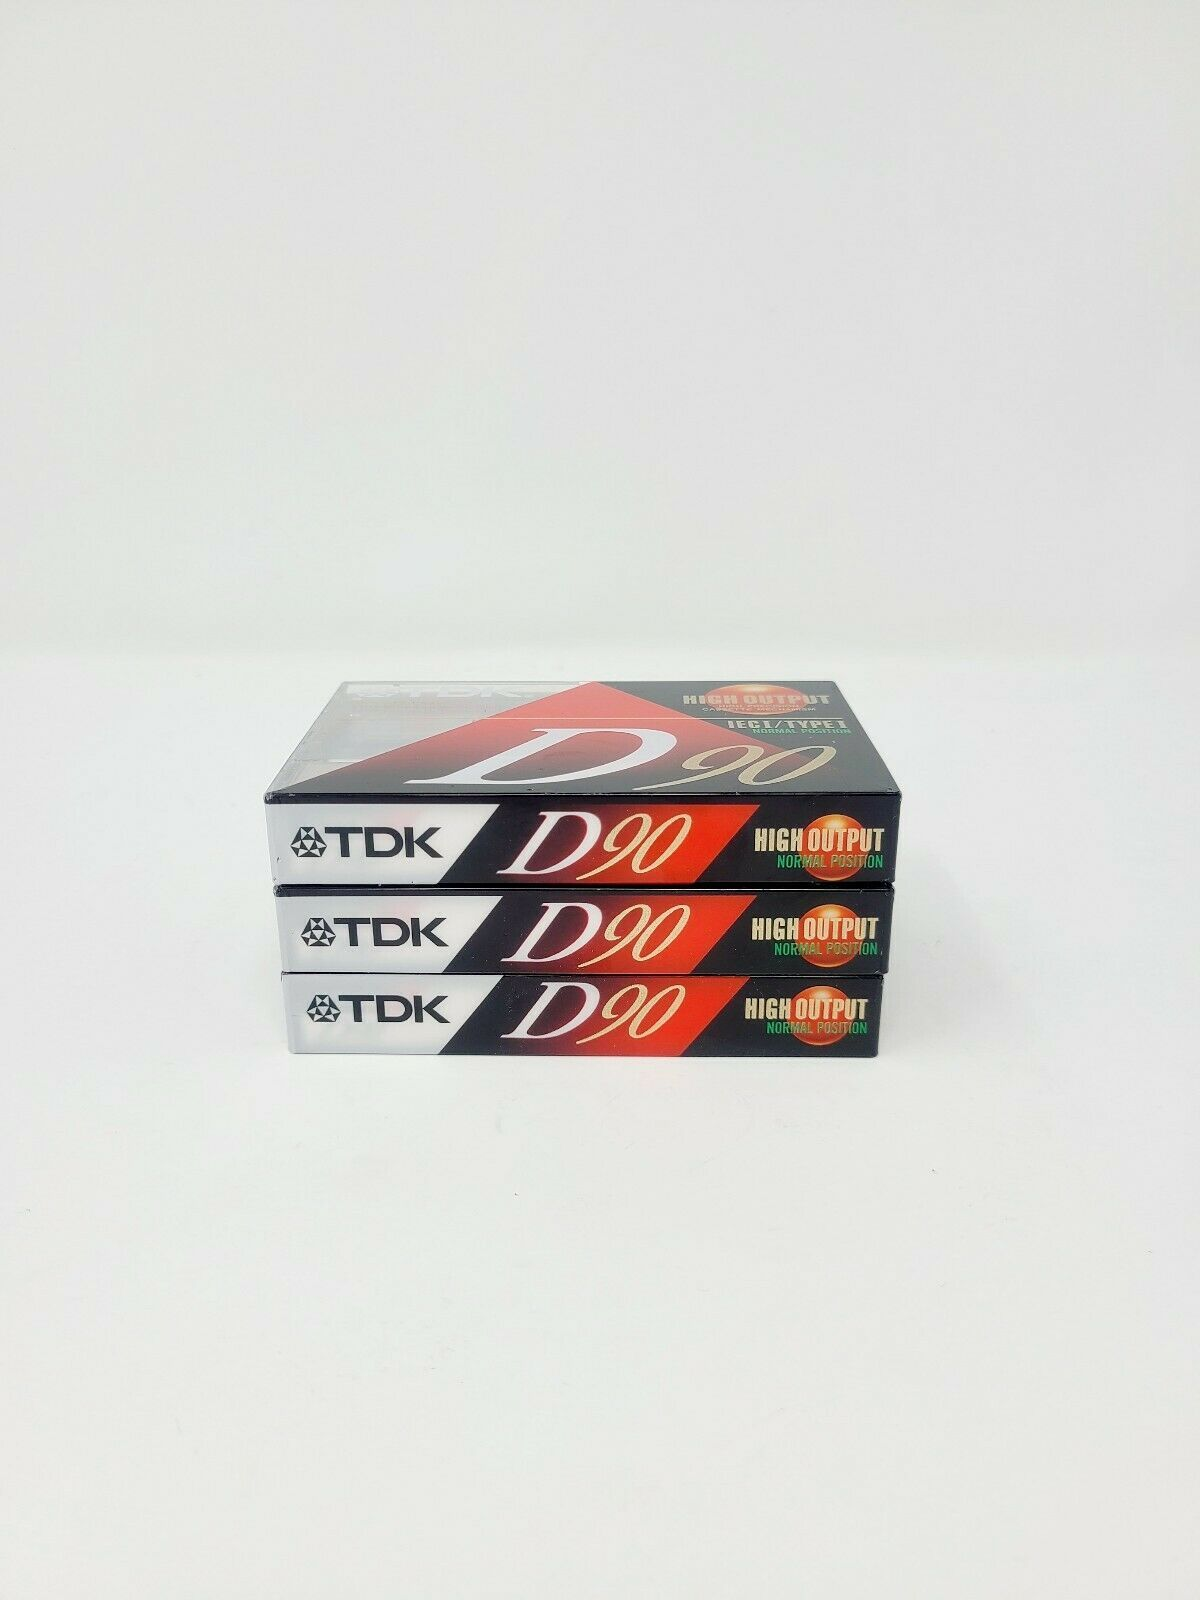 Primary image for TDK D90 High Output sealed cassette audio tapes set of 3